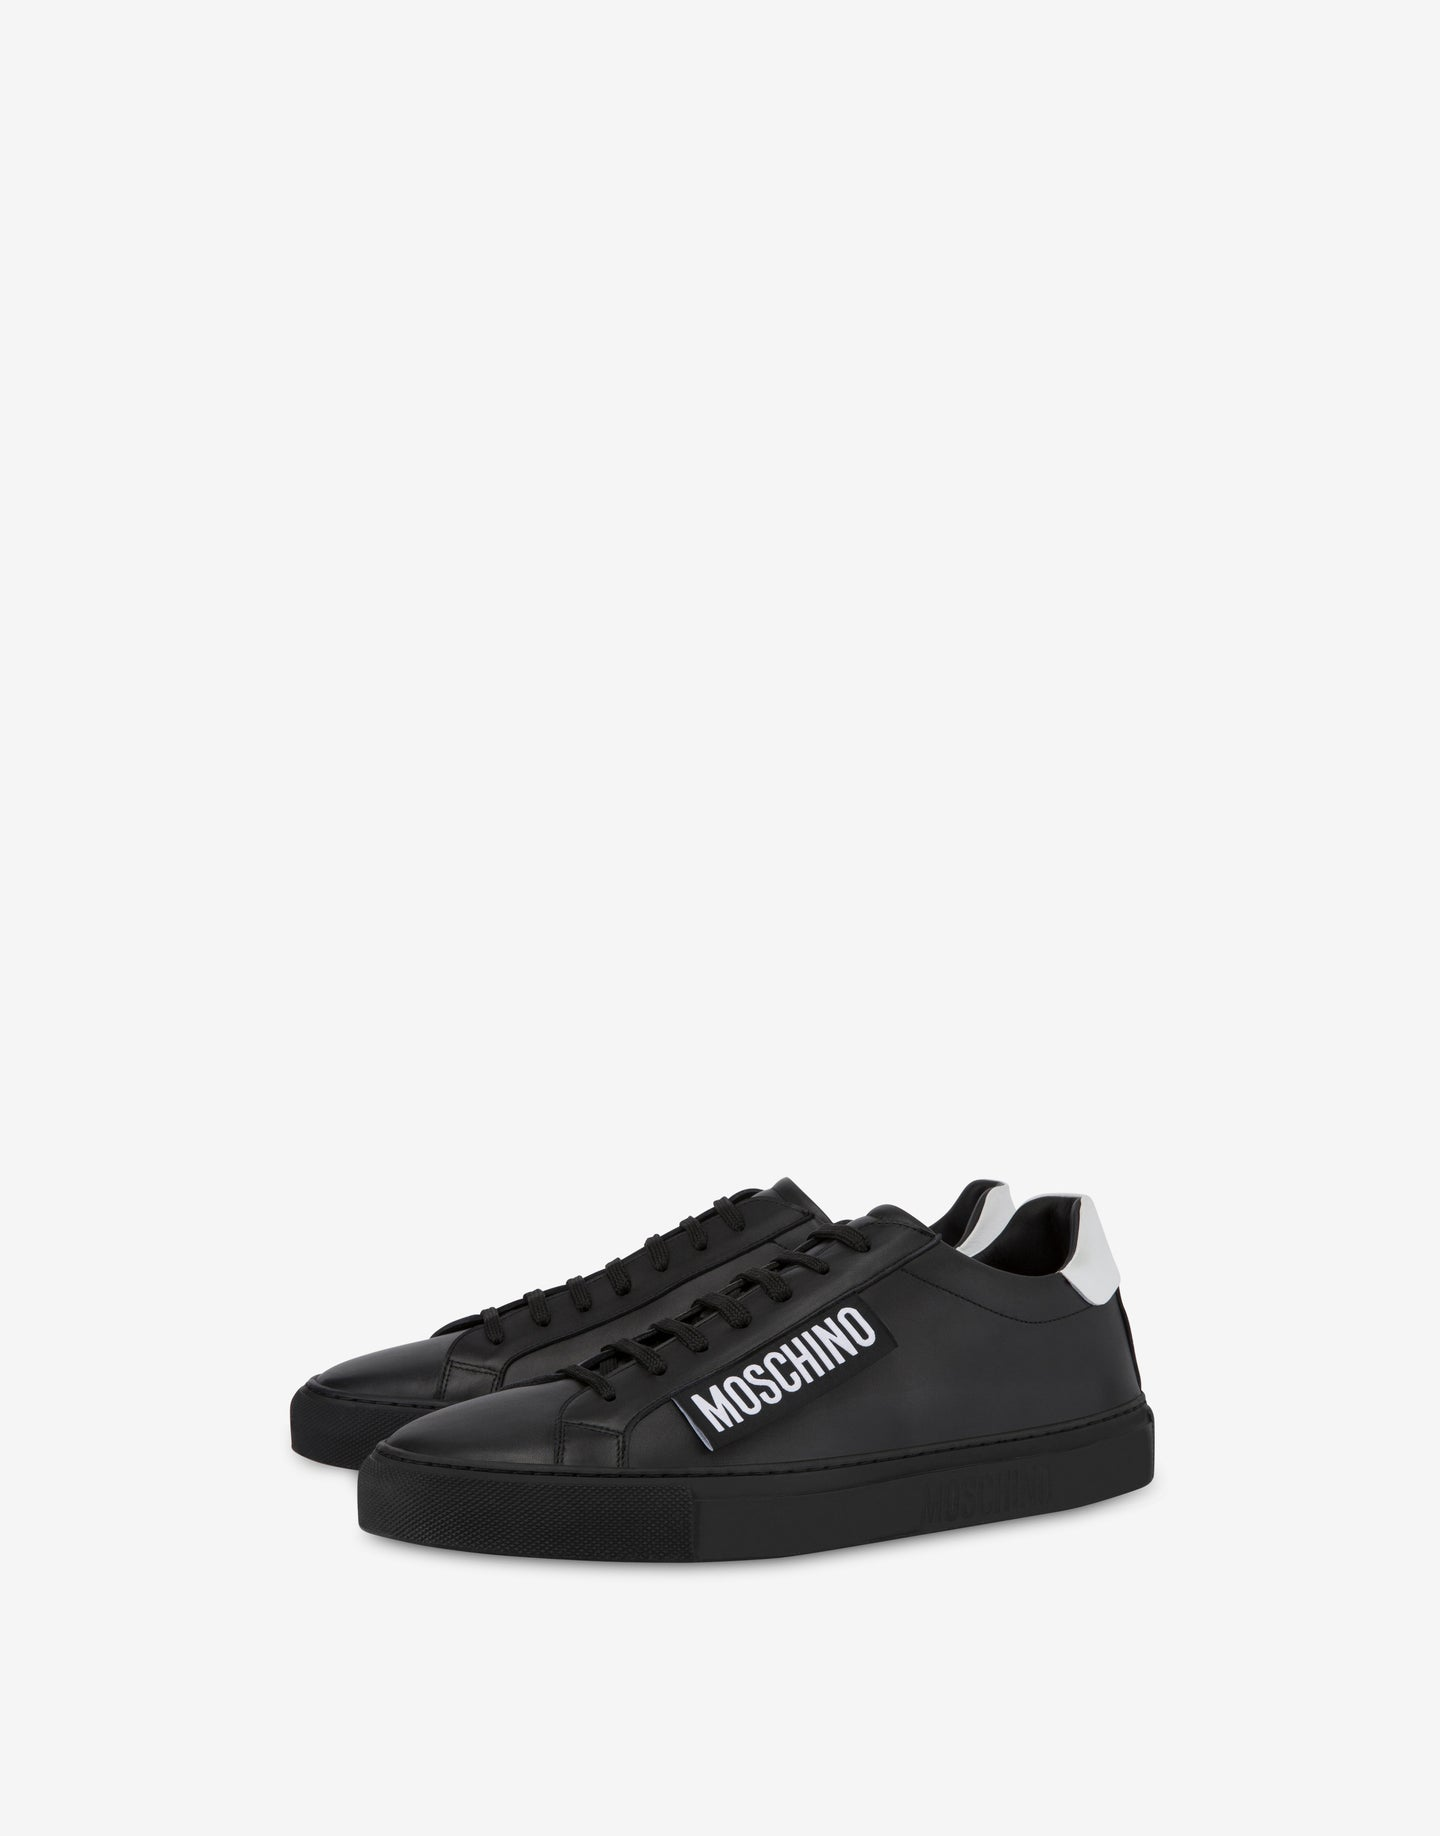 Moschino Label Calfskin Sneakers